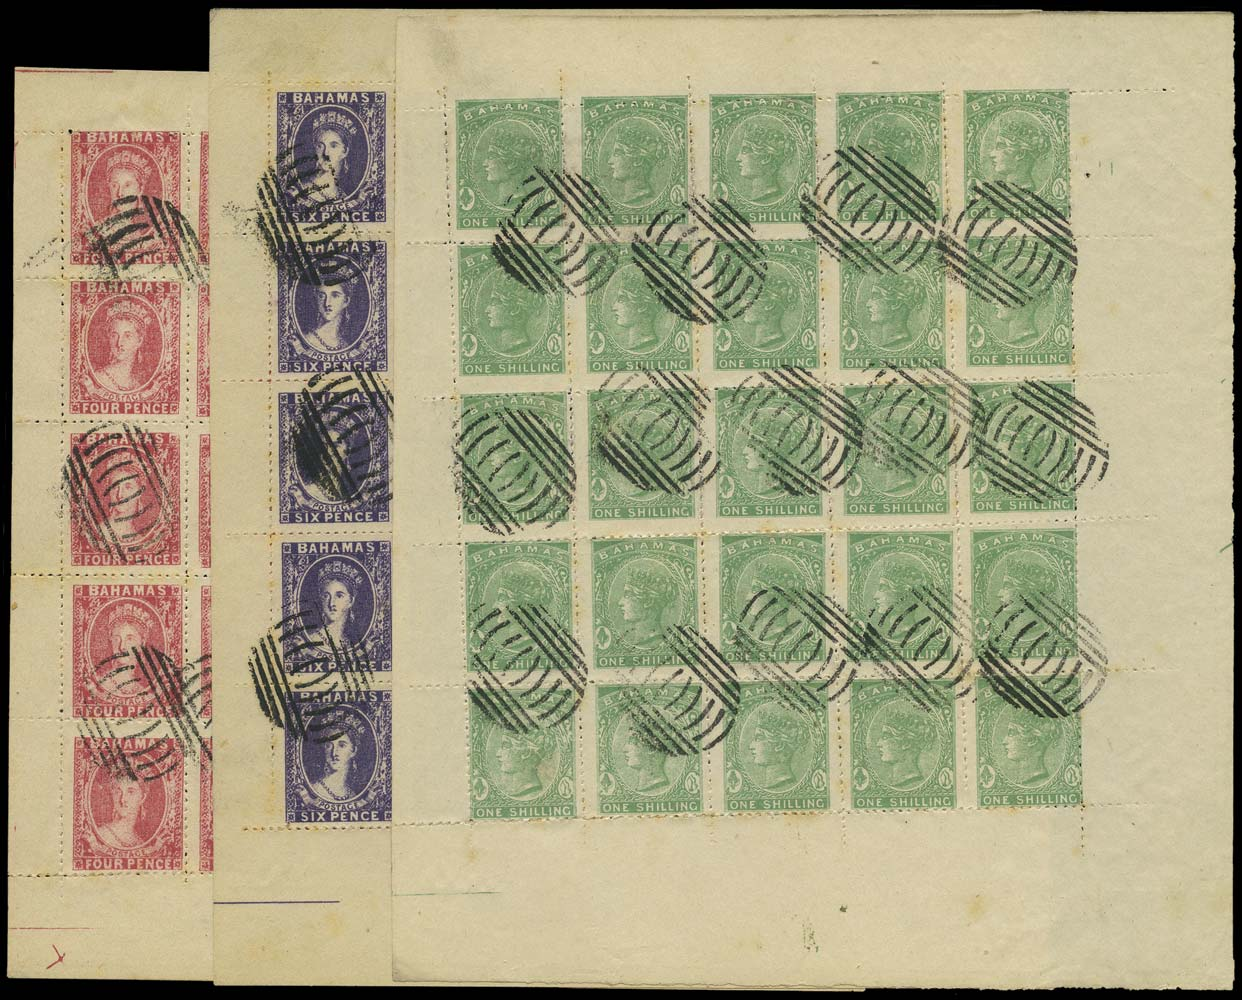 BAHAMAS 1861  SG5/6, 38 Forgery by Spiro of Chalon 4d and 6d, and 1s in complete sheets